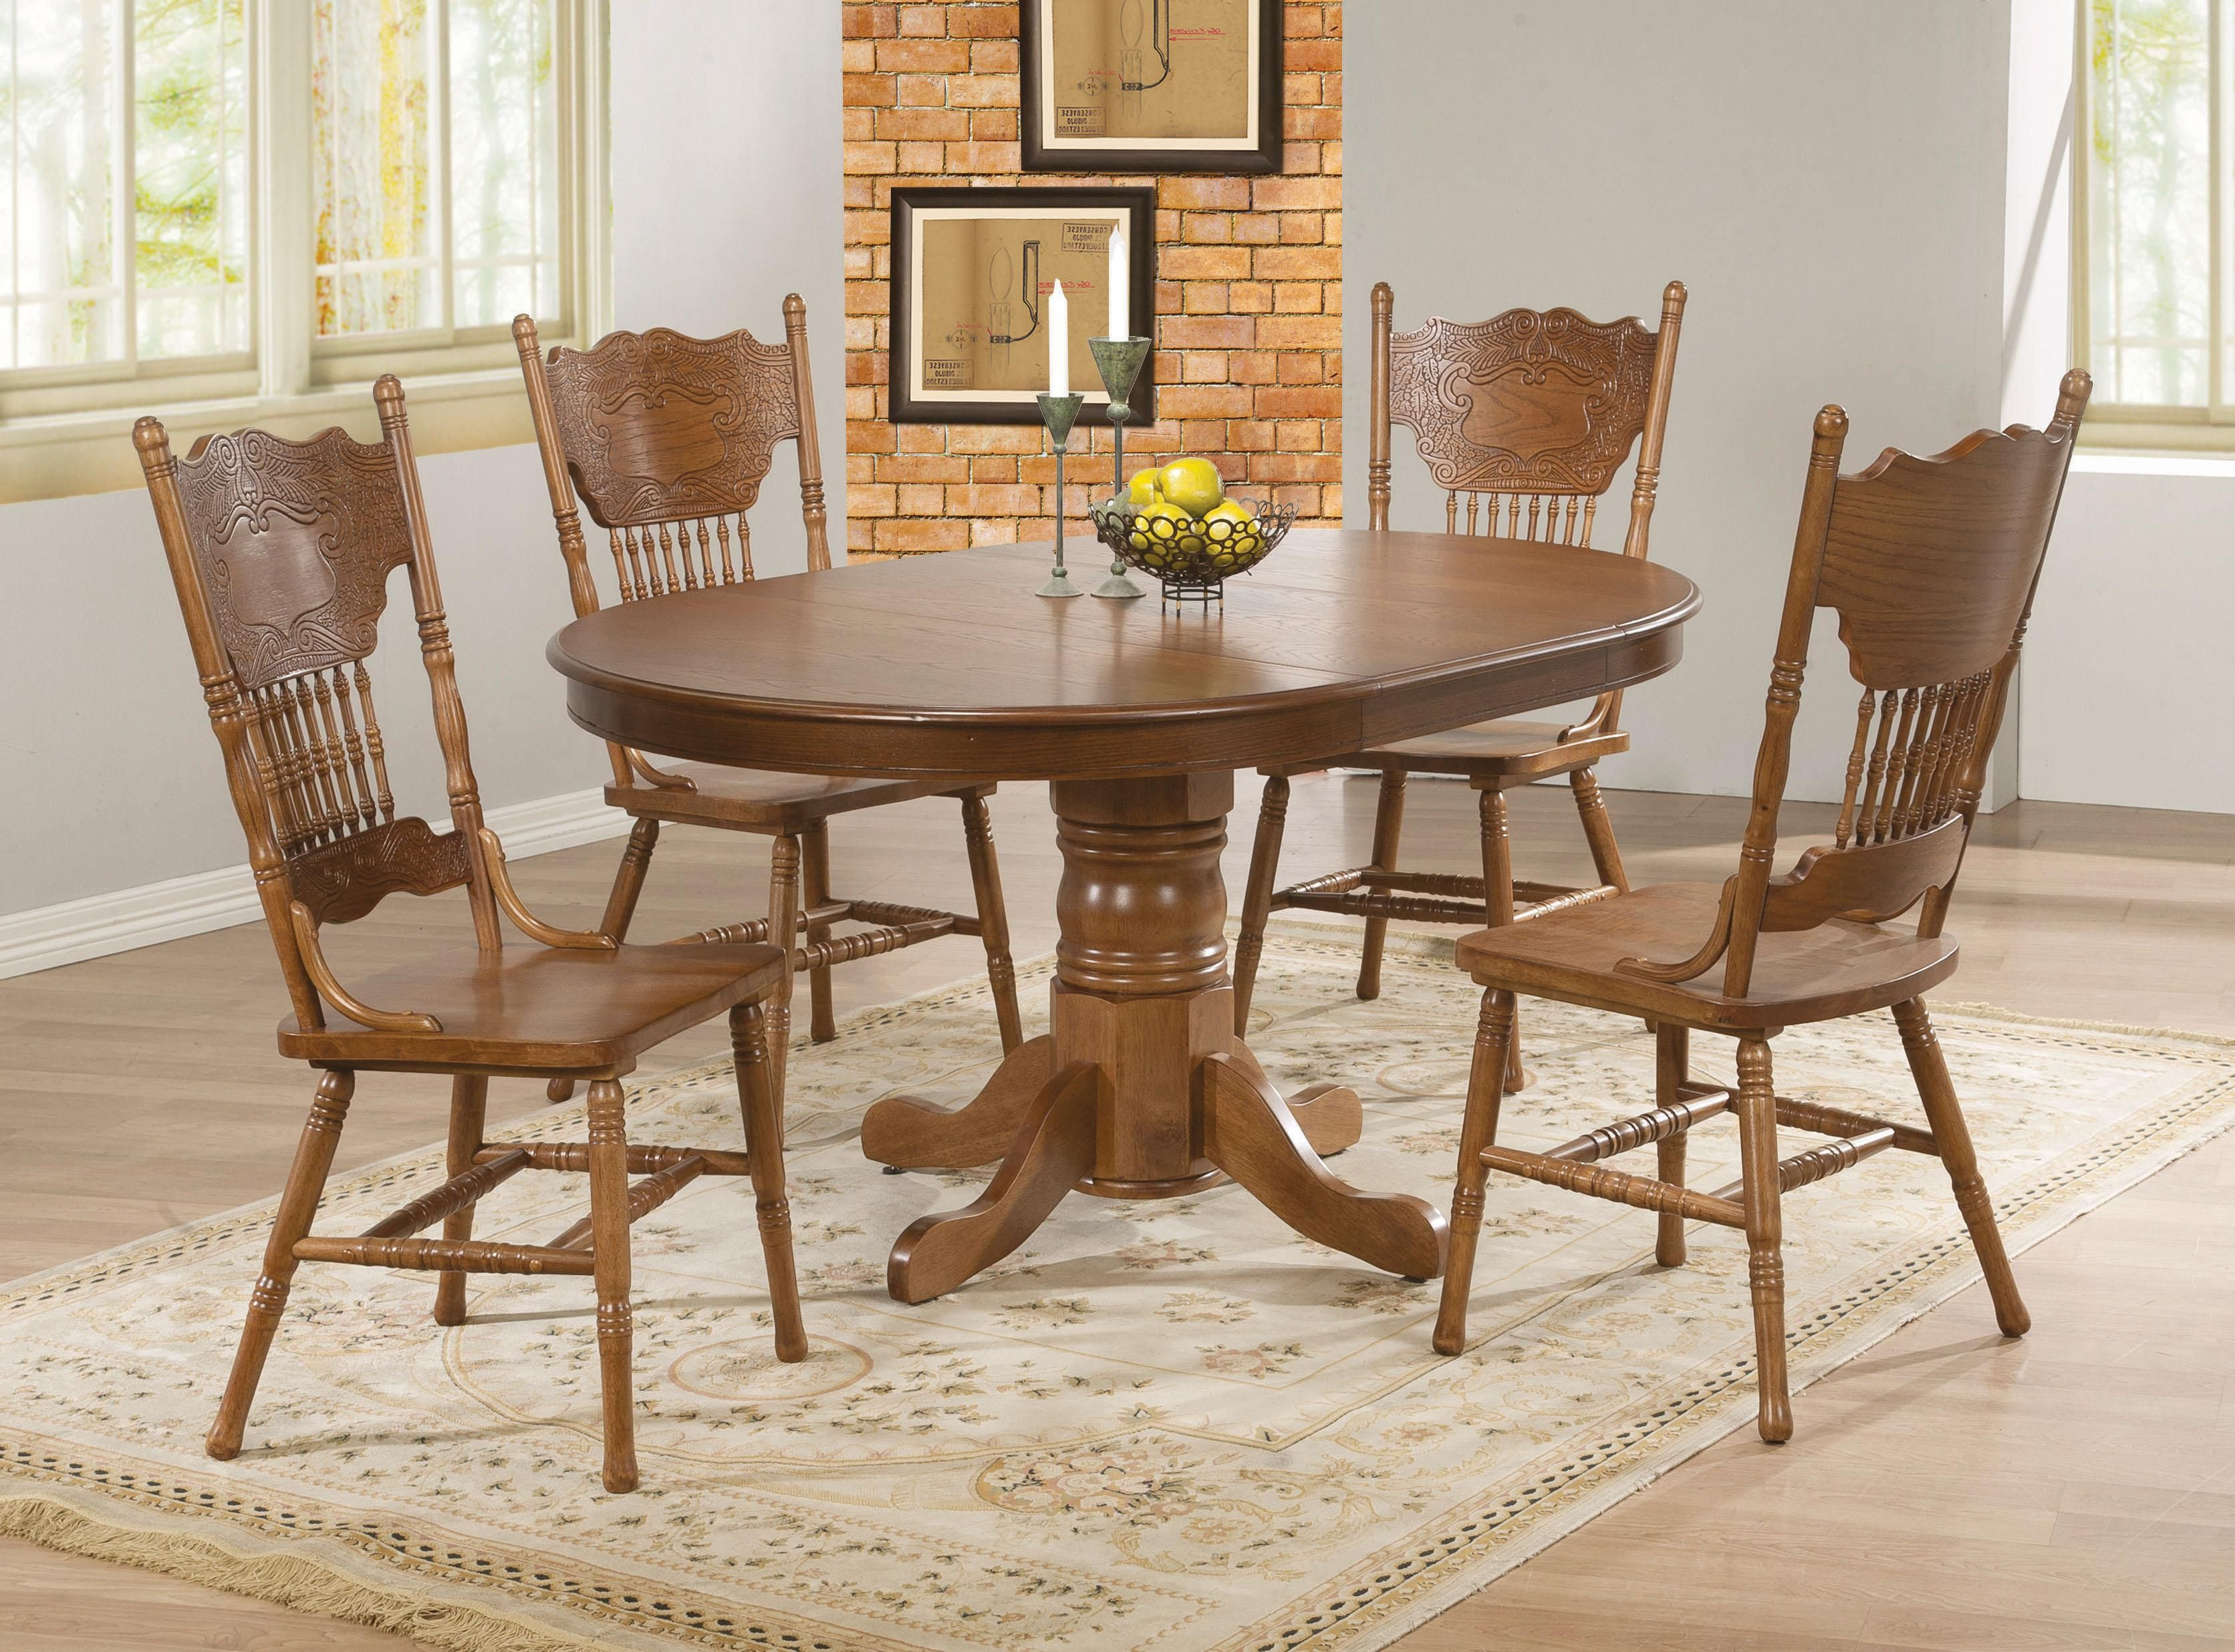 Esstisch Sale Farmhouse Table And Chairs For Sale Stühle Oak Dining Room